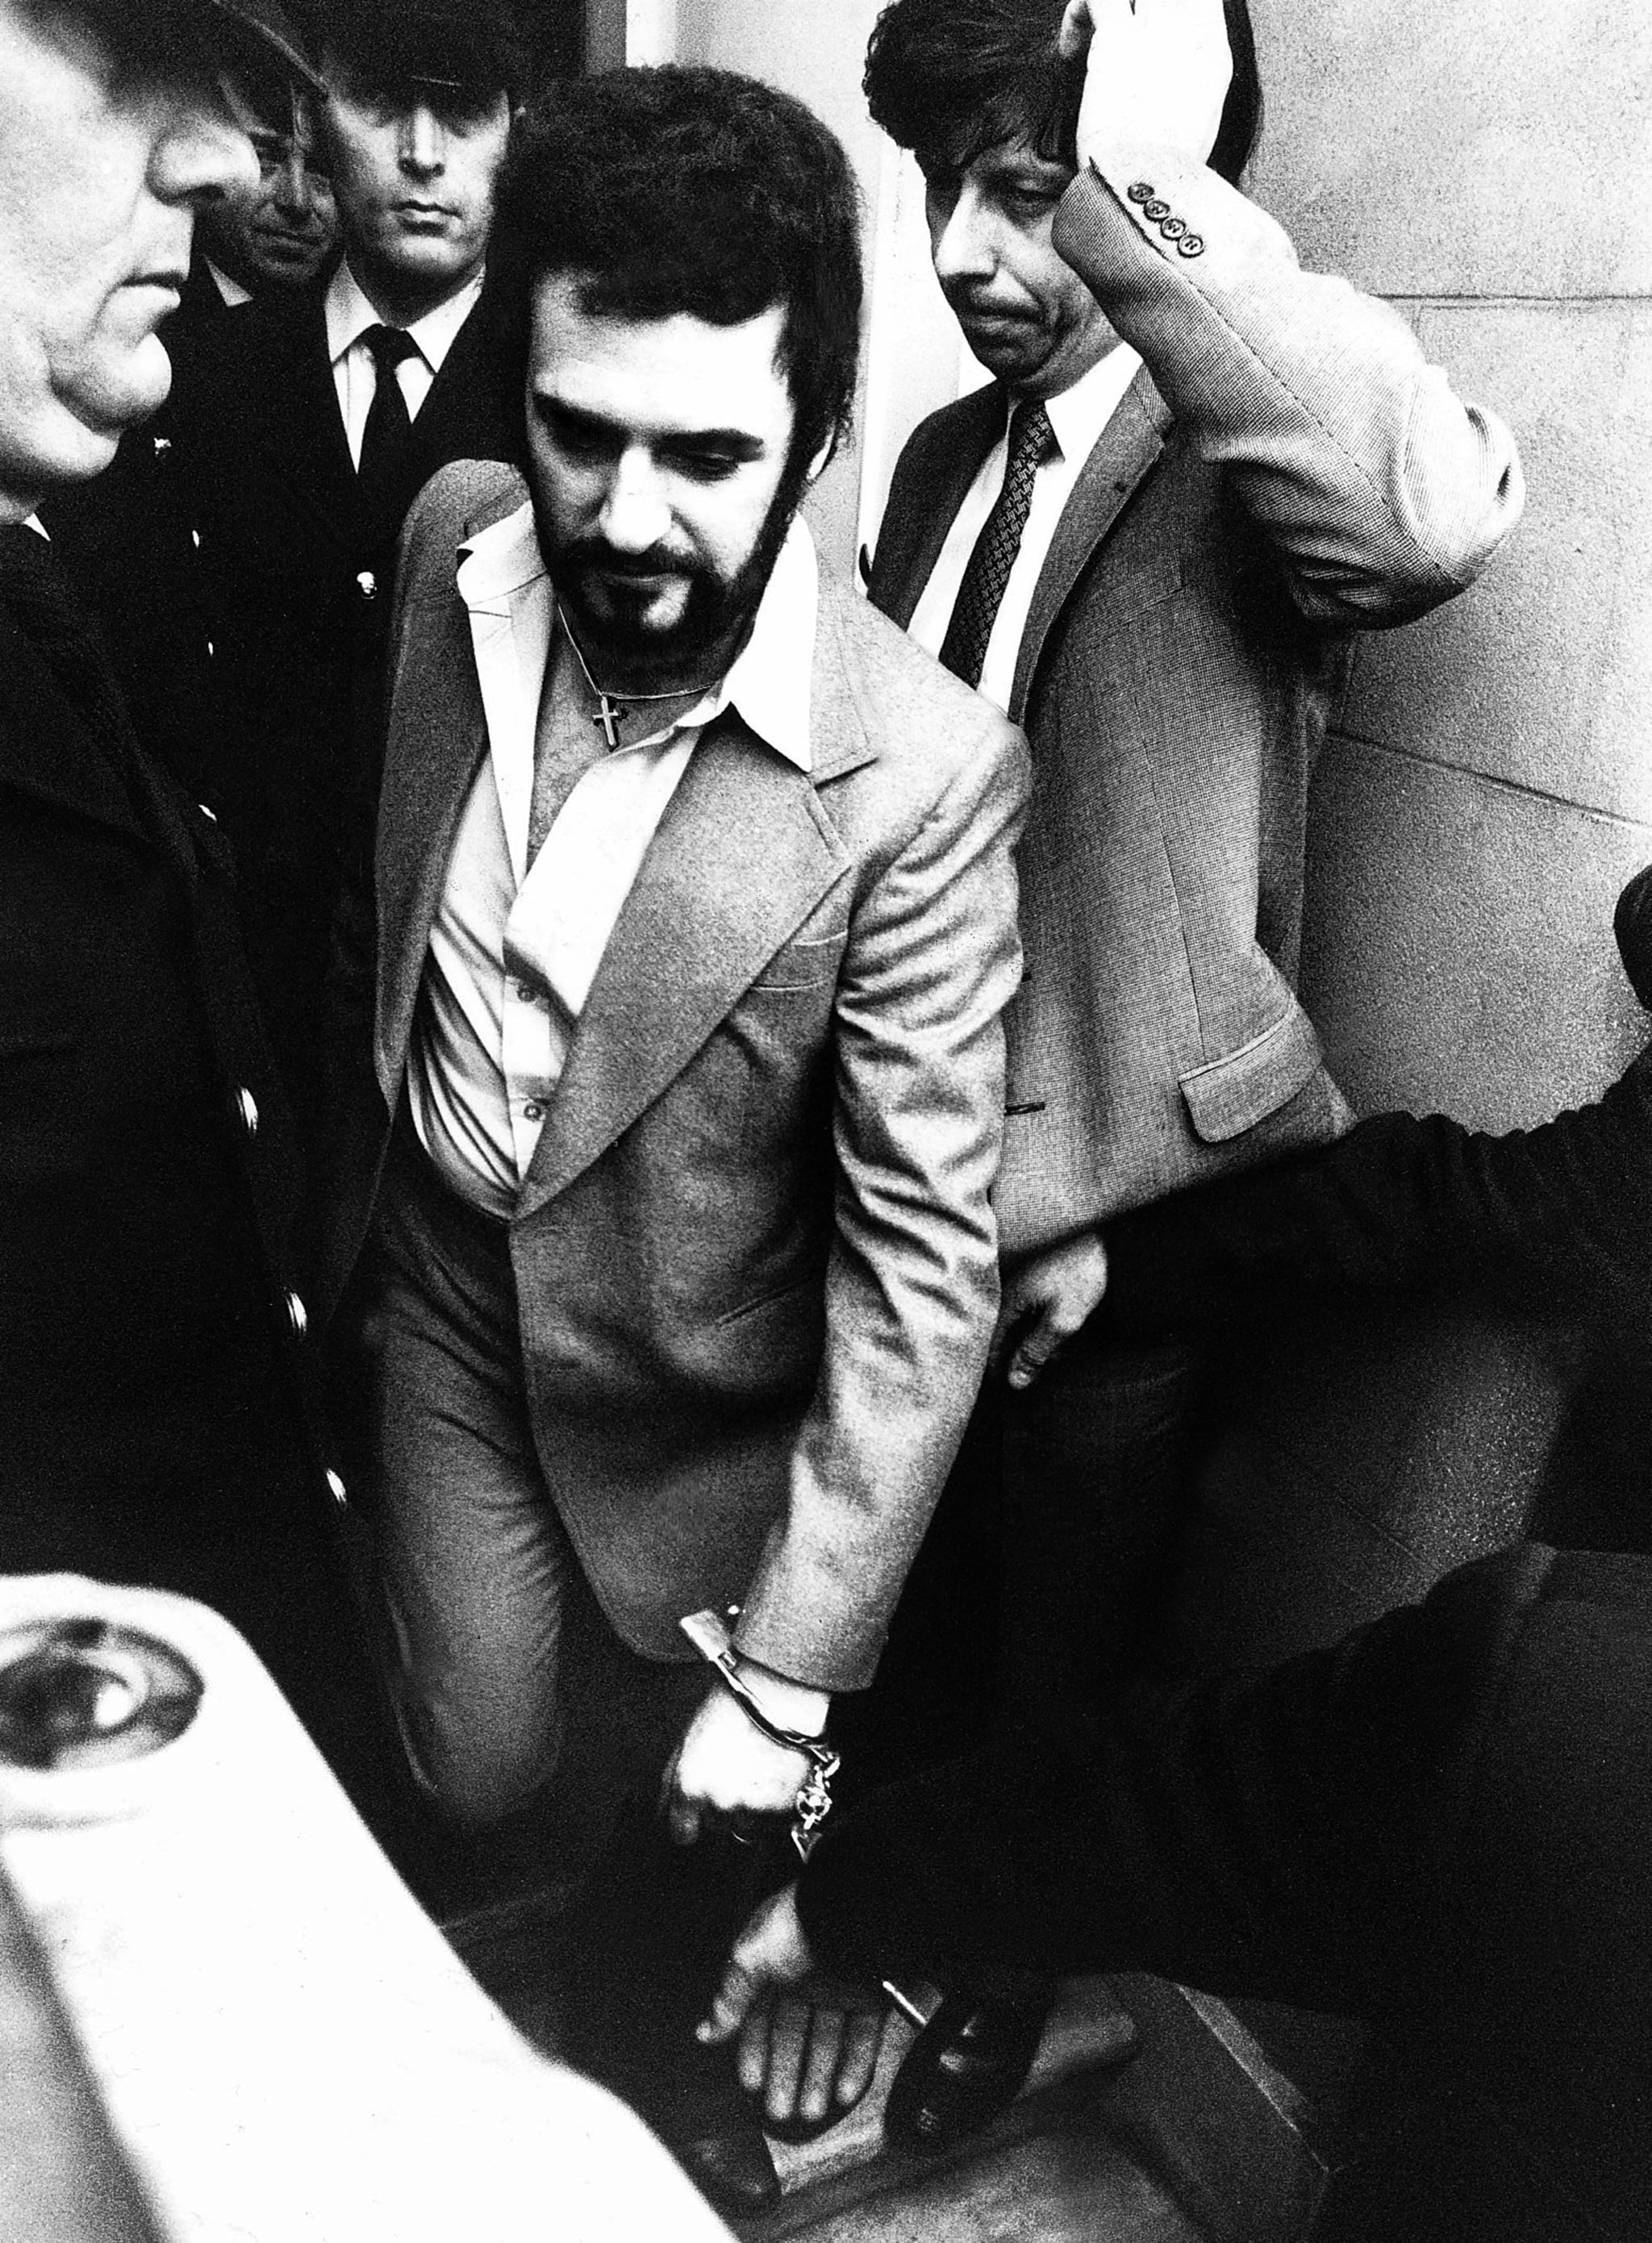 Peter Sutcliffe the Yorkshire ripper handcuffed leaving court msi January 5th 1981 A 35-year-old lorry driver from Bradford, suspected of carrying out 13 murders across West Yorkshire over the past five years, has appeared in court. Peter William Sutcliffe, of 6 Garden Lane, Bradford, is accused of murdering 20-year-old university student Jacqueline Hill, who was killed in Leeds seven weeks ago. (Photo by Stone Peter/Mirrorpix/Getty Images)